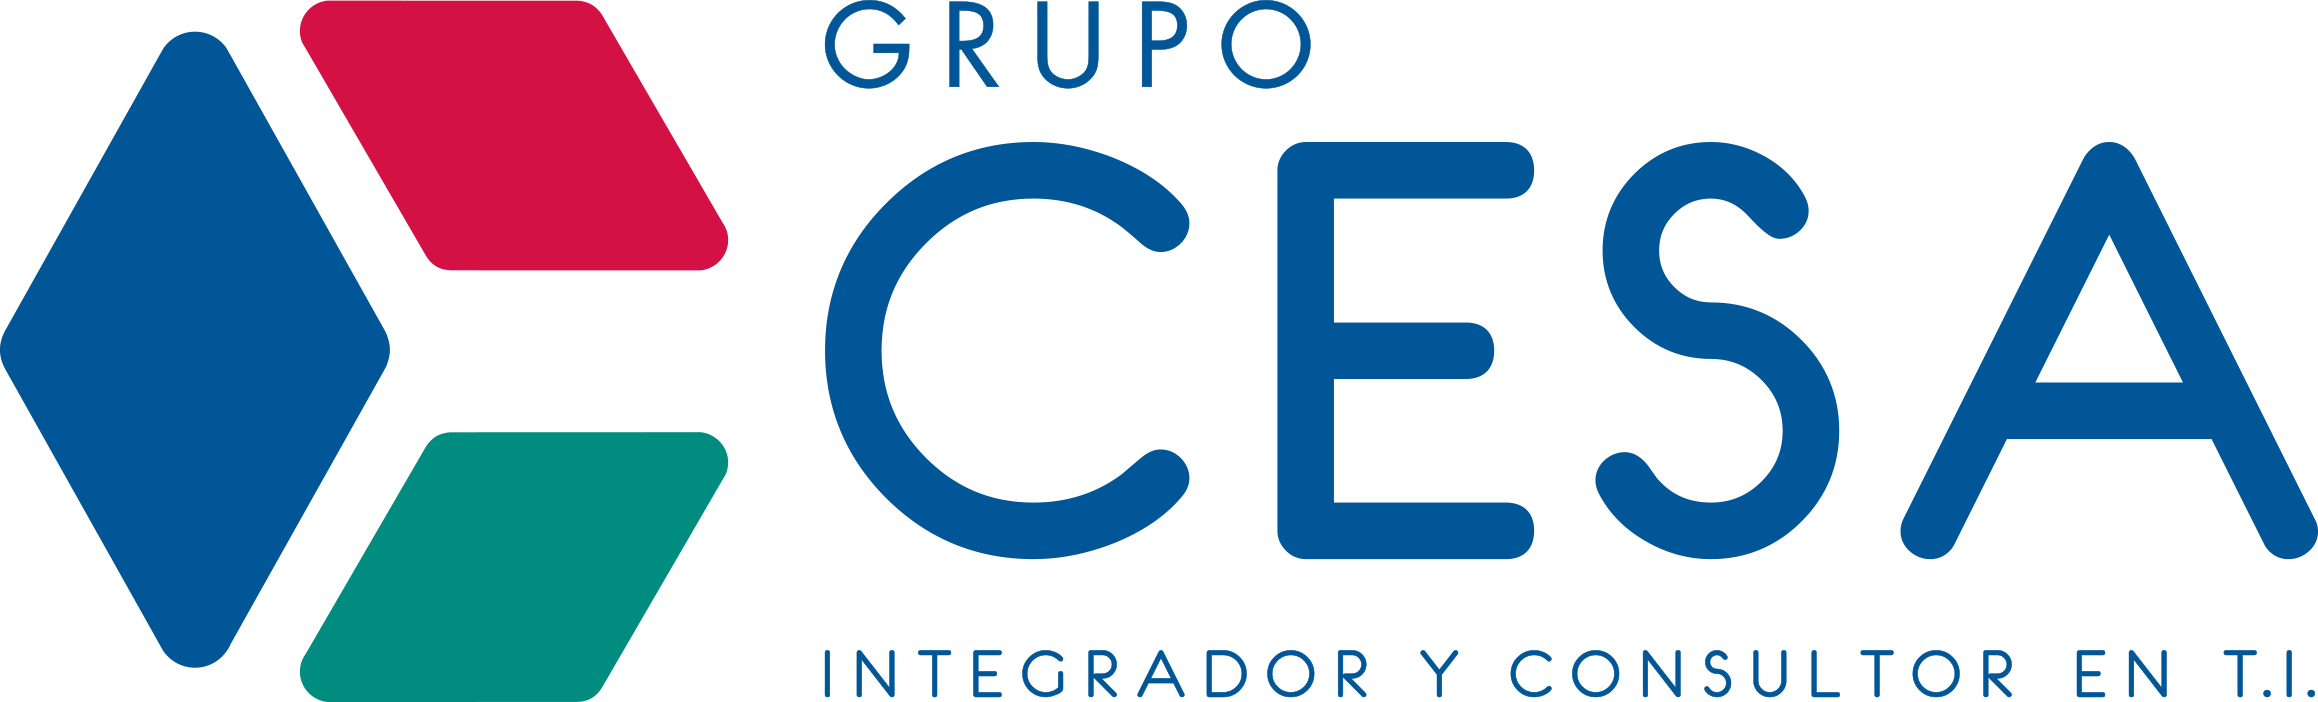 Group CESA